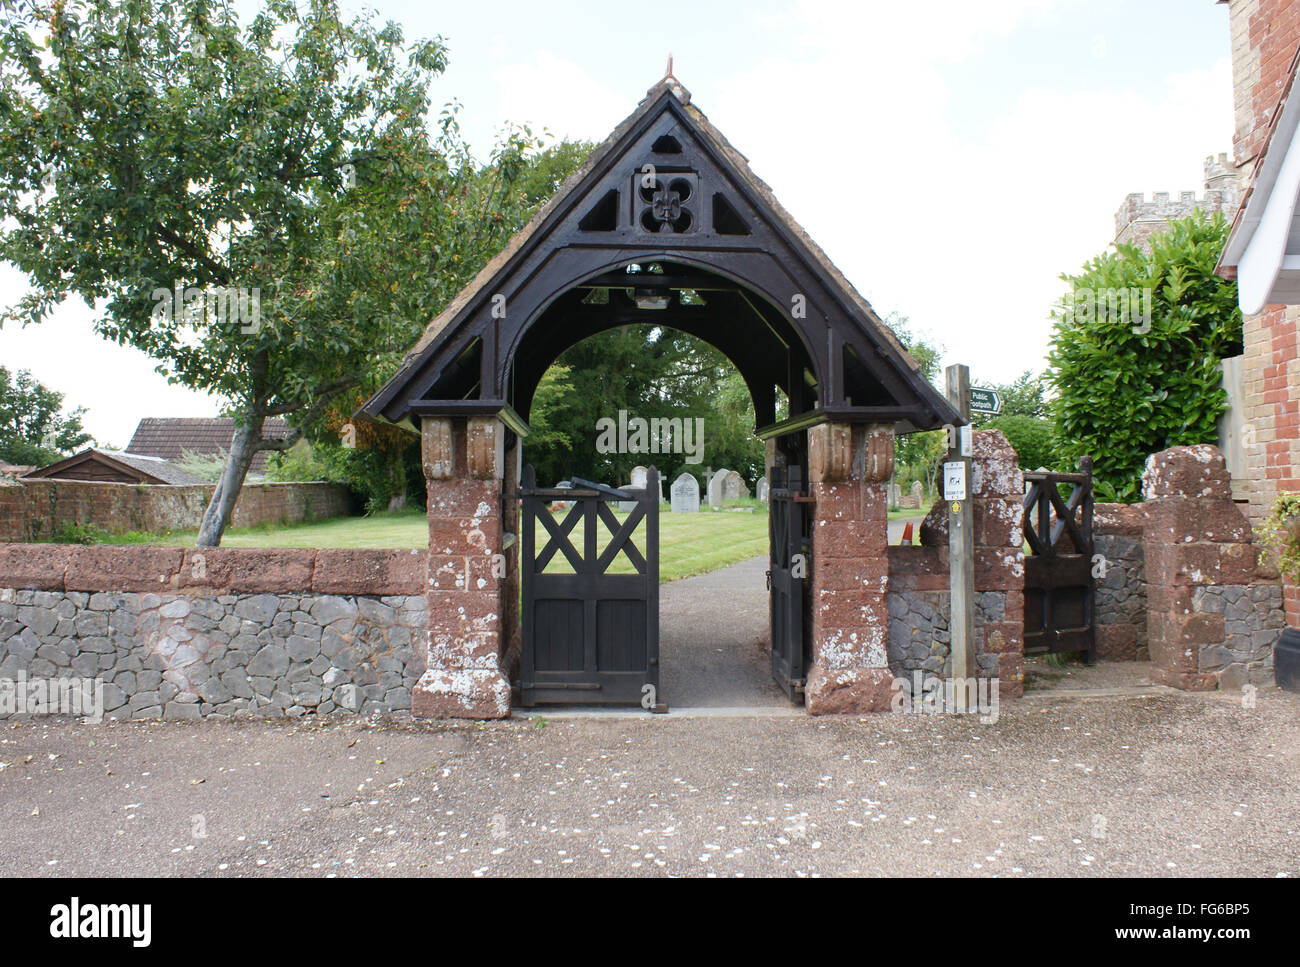 a typical lynch gate, in England - Stock Image